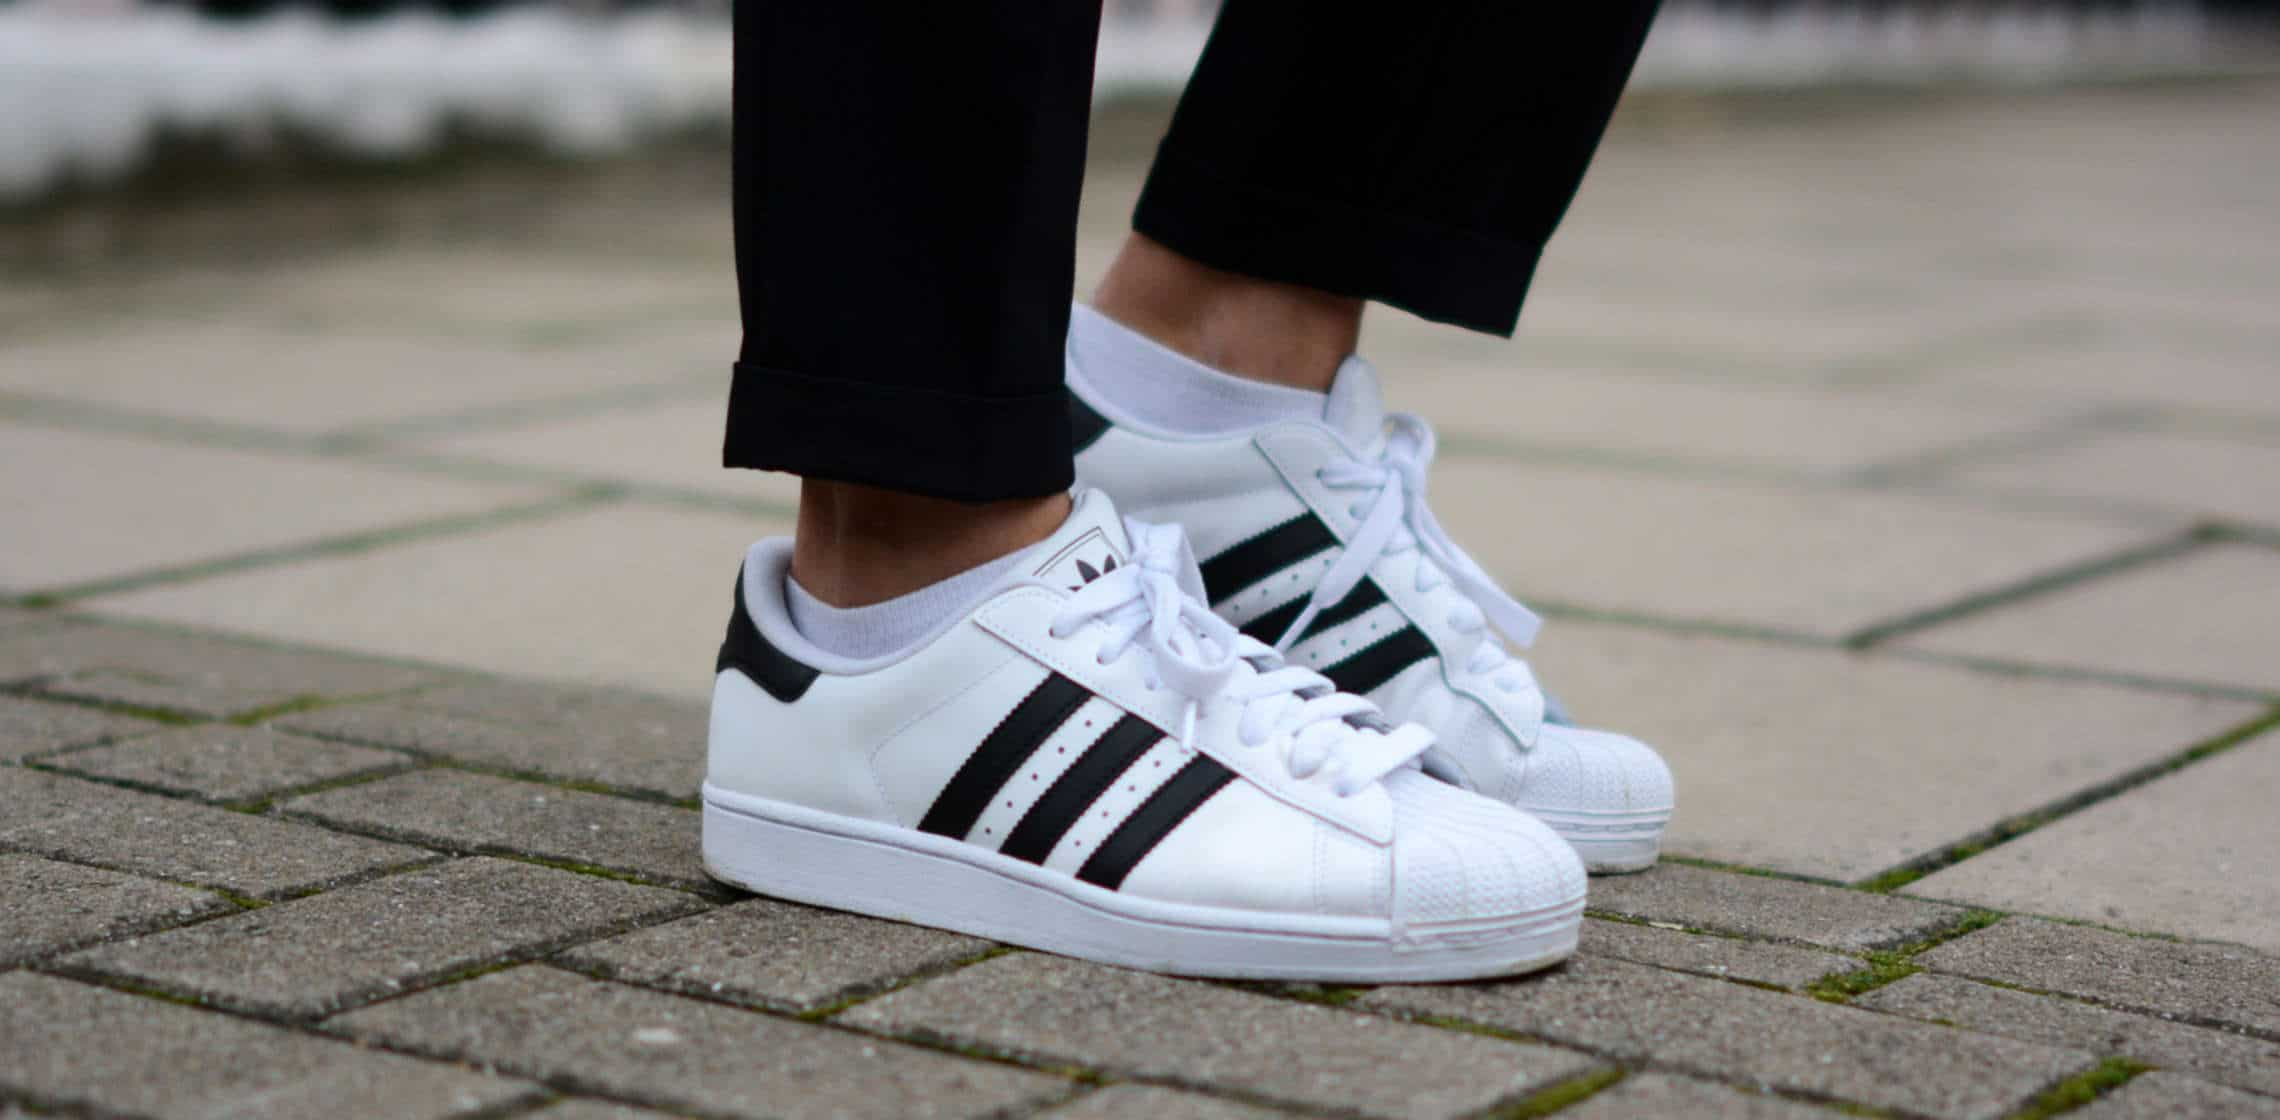 adidas superstar replicas baratas